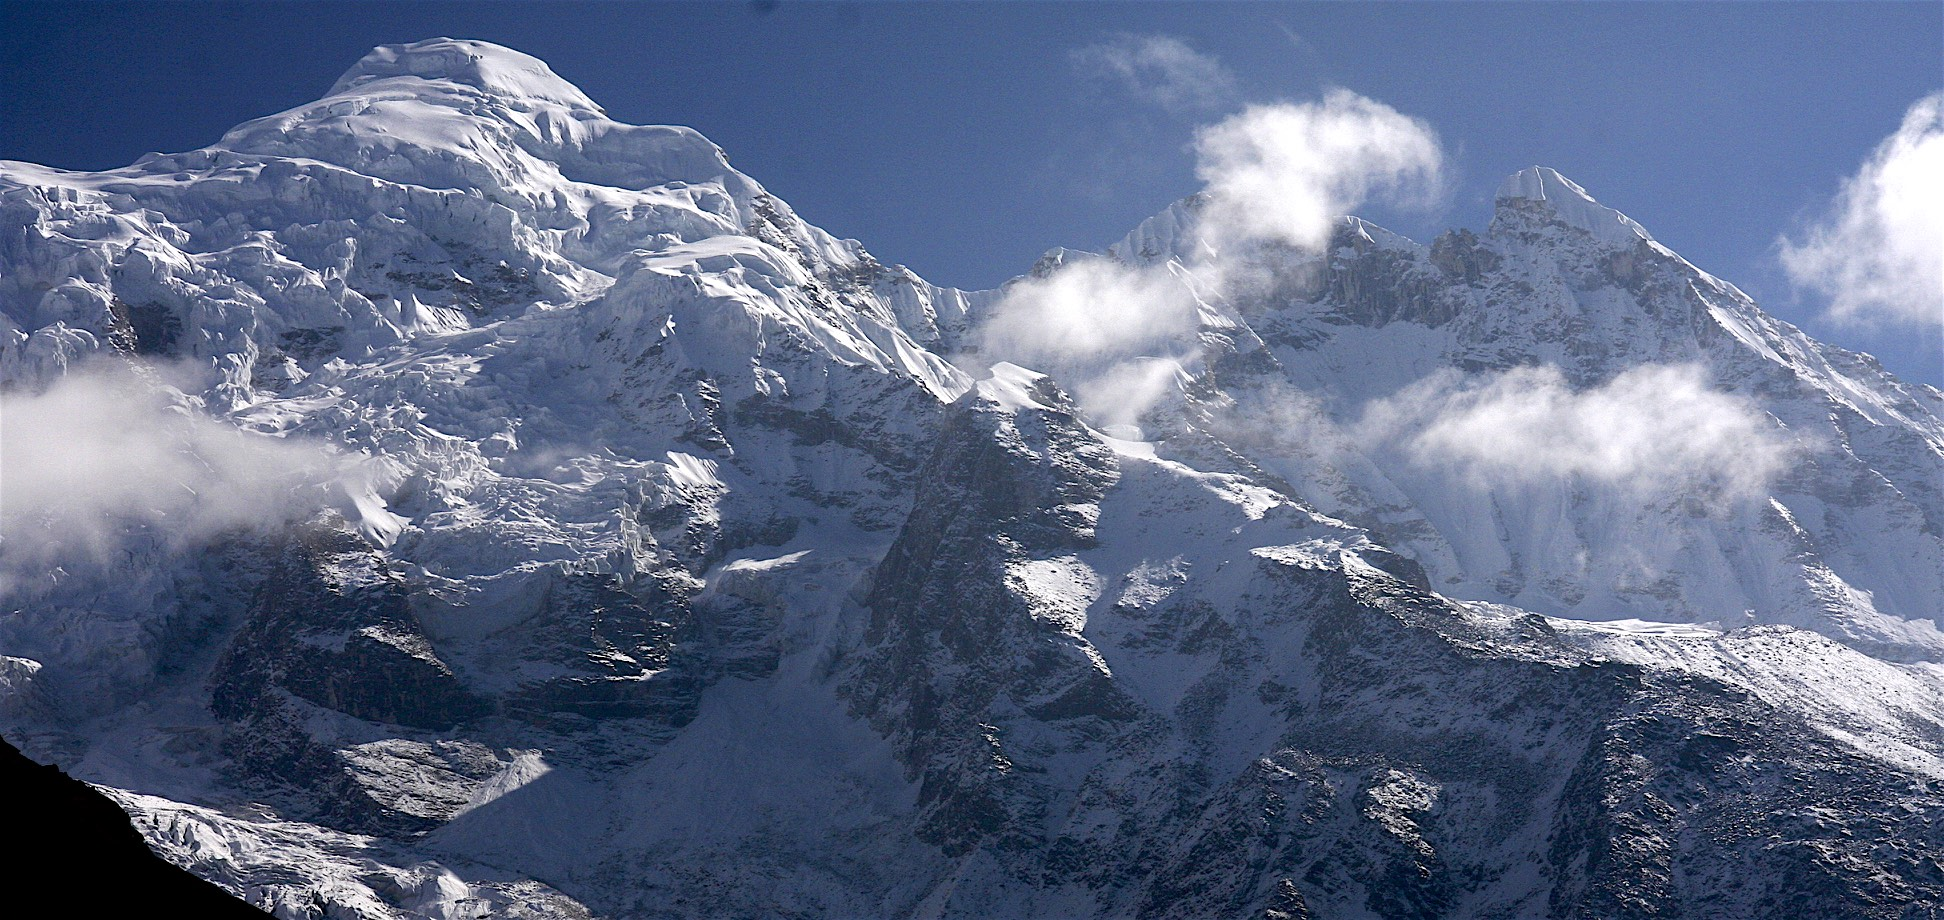 Manaslu from the west